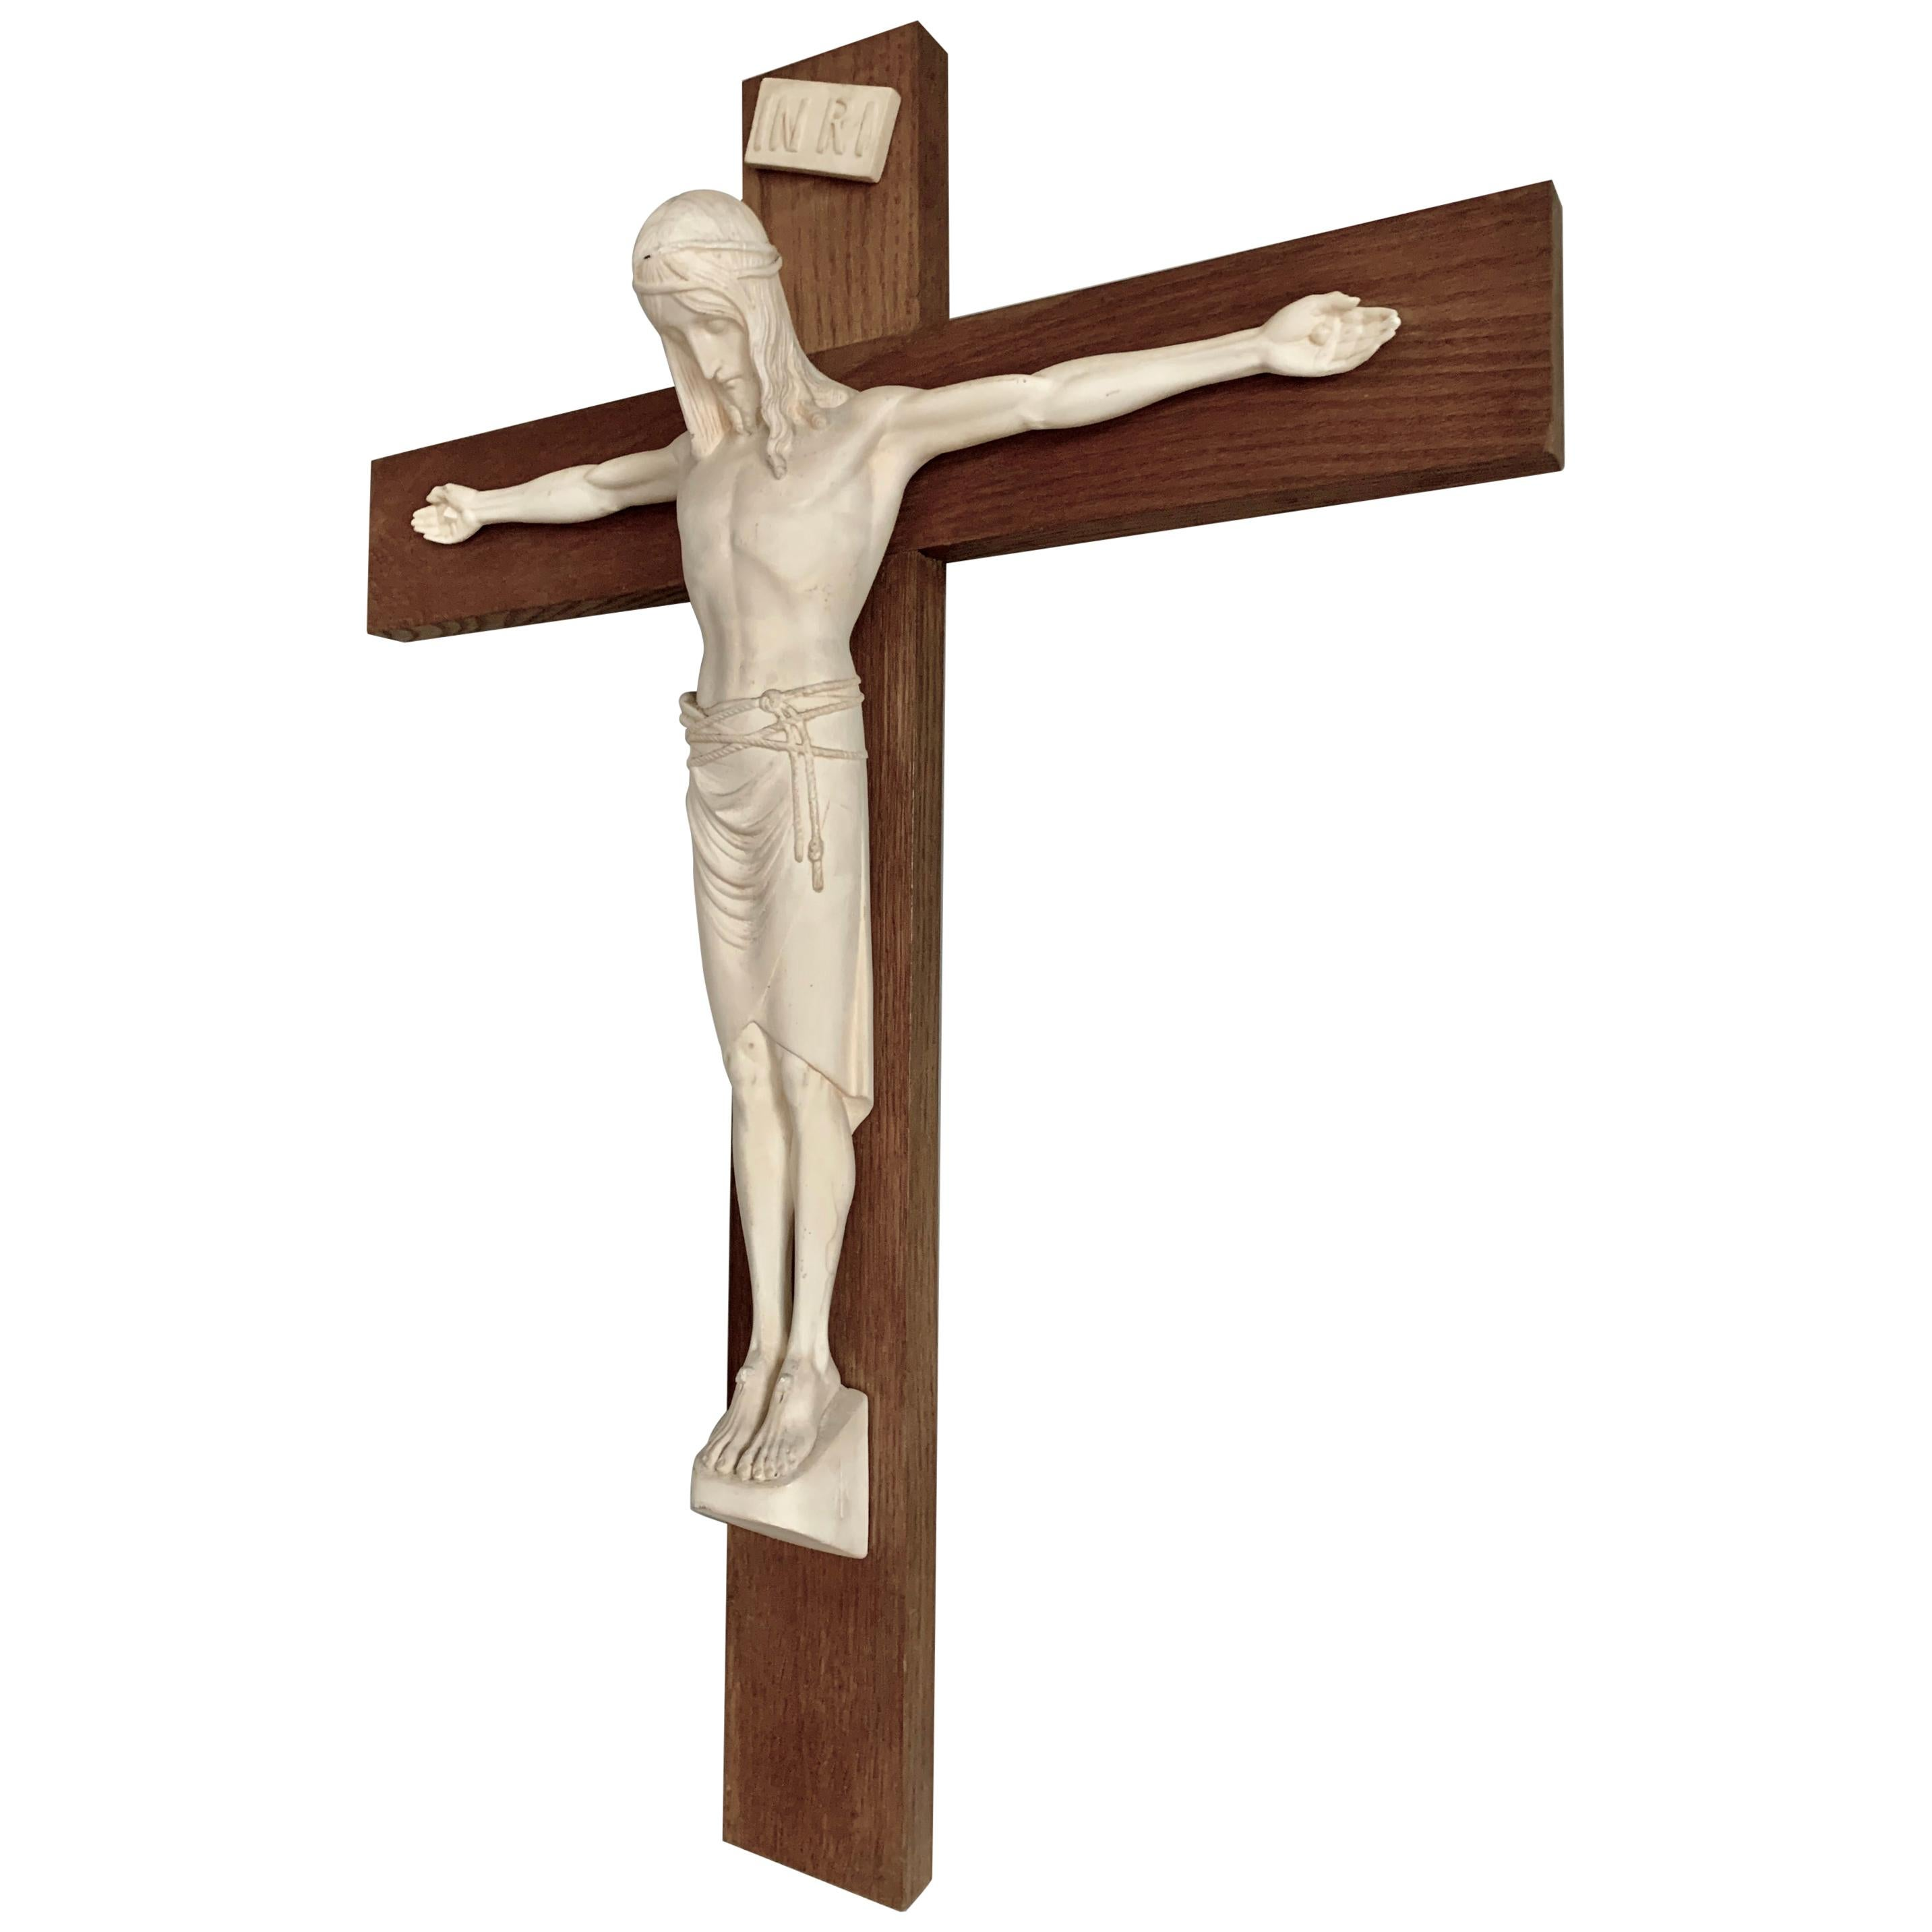 Stylish Arts & Crafts Crucifix with Stunning Antique Handcrafted Jesus Sculpture